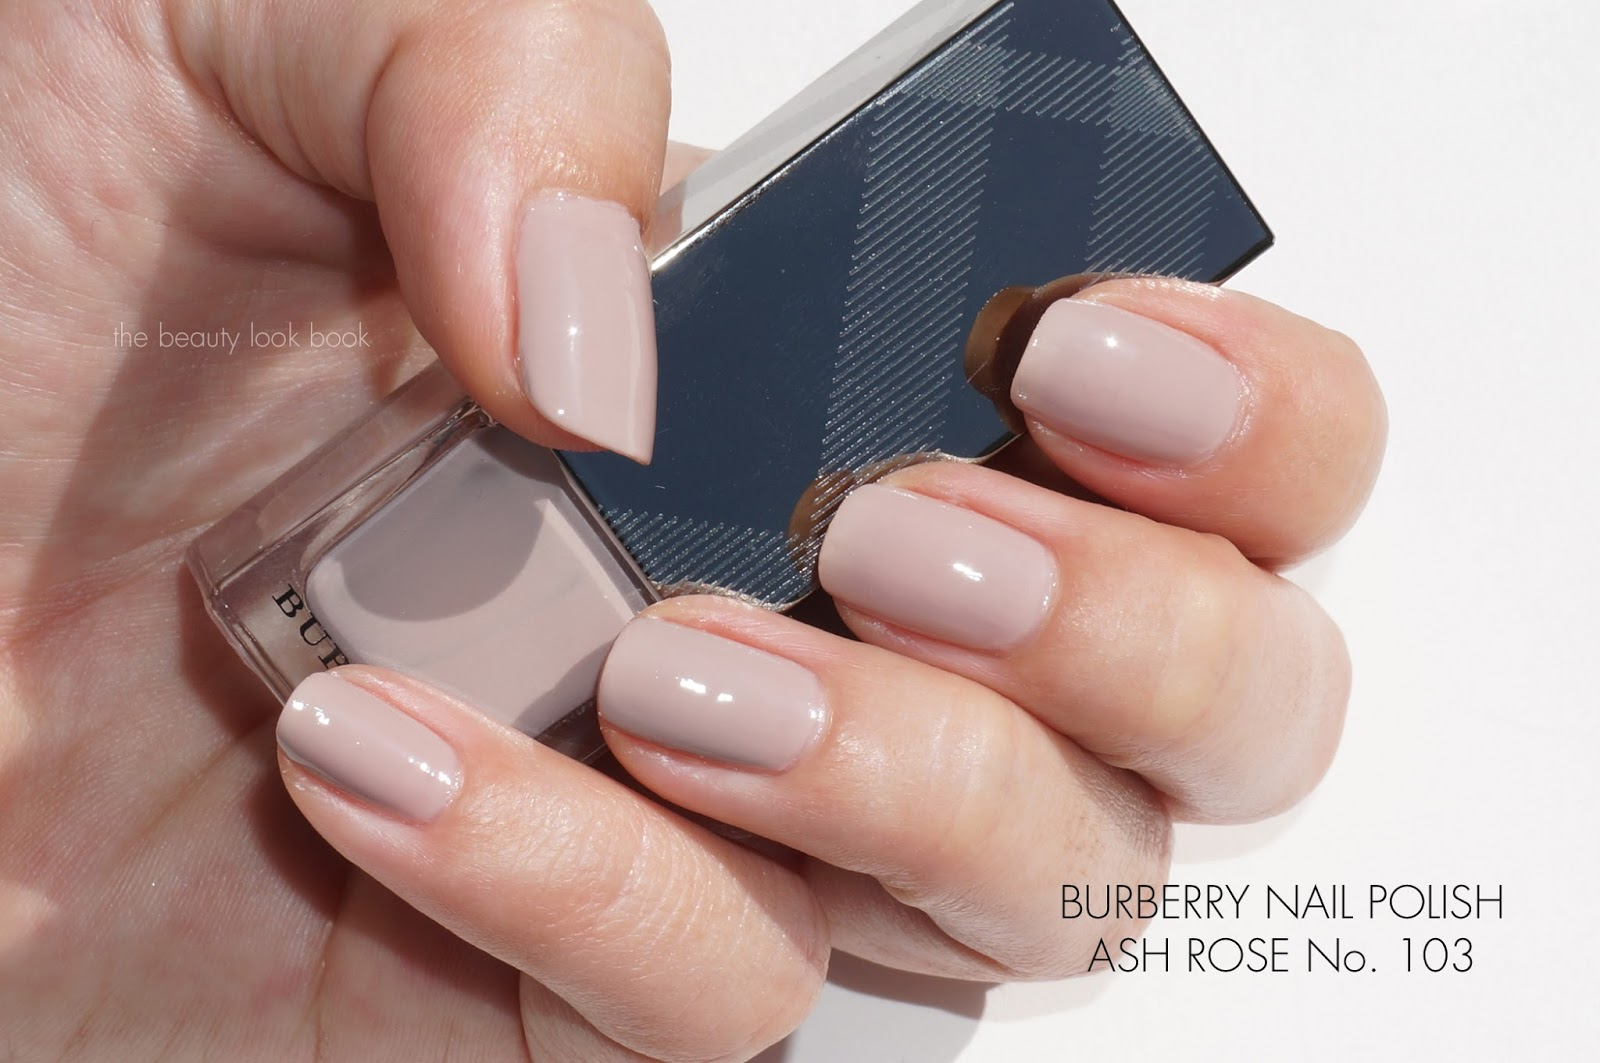 Burberry Beauty Nail Polish in Nude Pink No. 101 and Ash Rose No ...